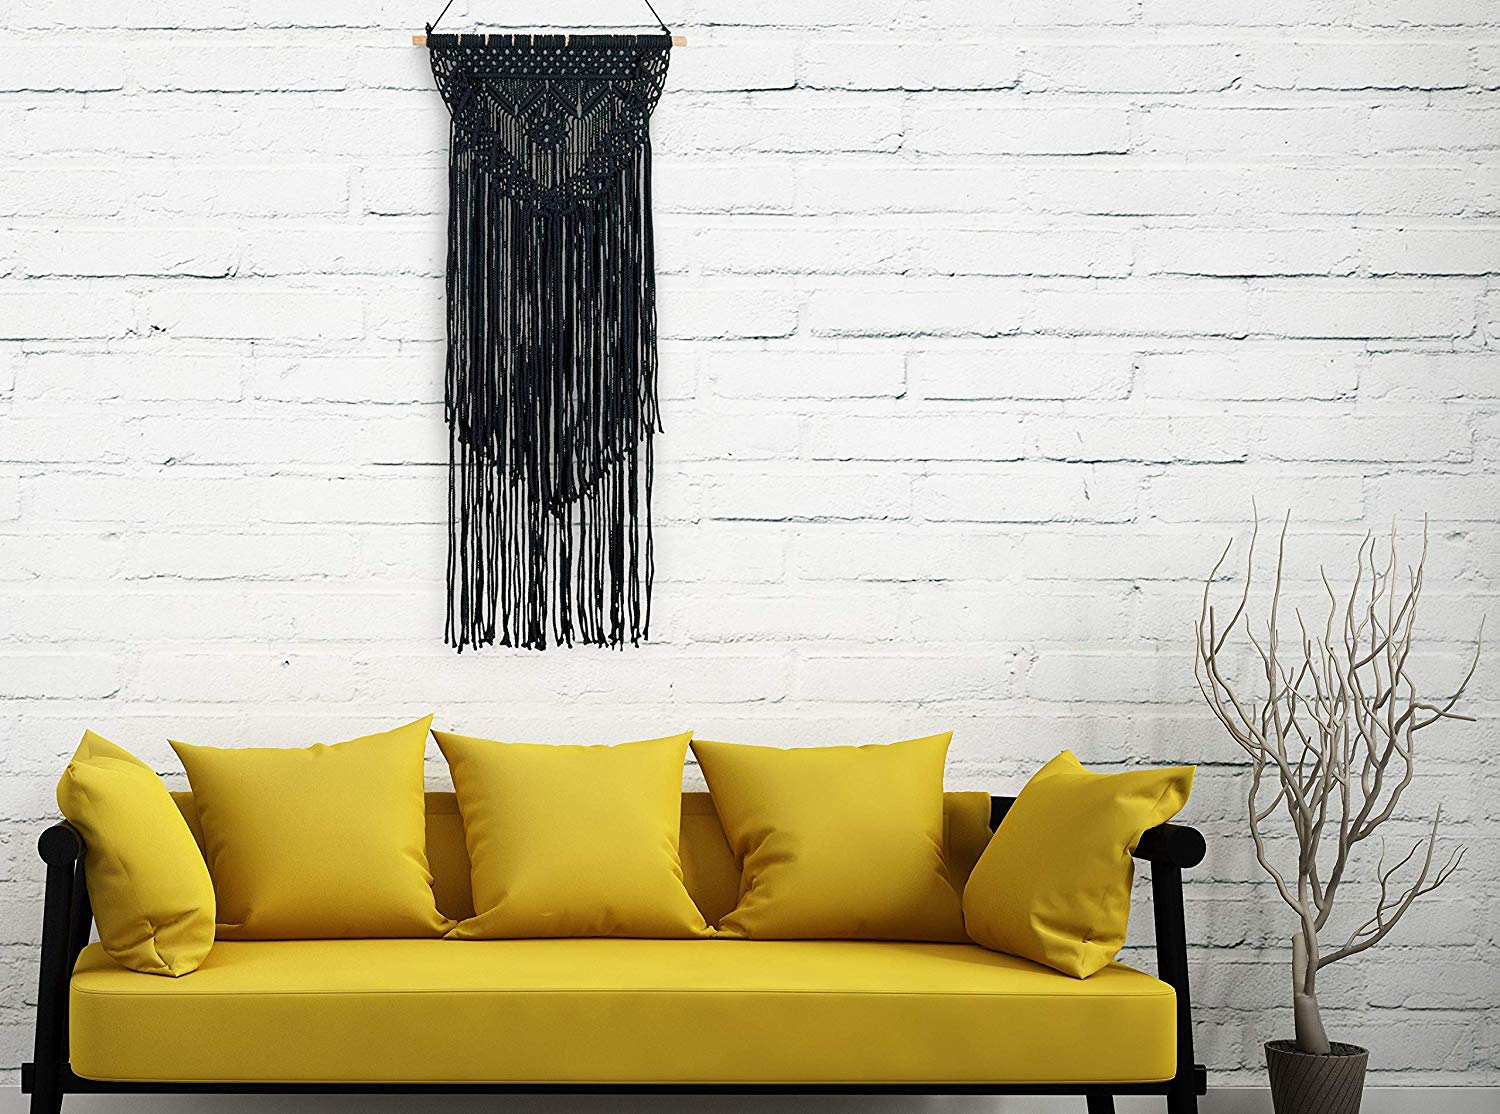 Boho Macrame Hanging Woven Decor with yellow couch and white brick wall